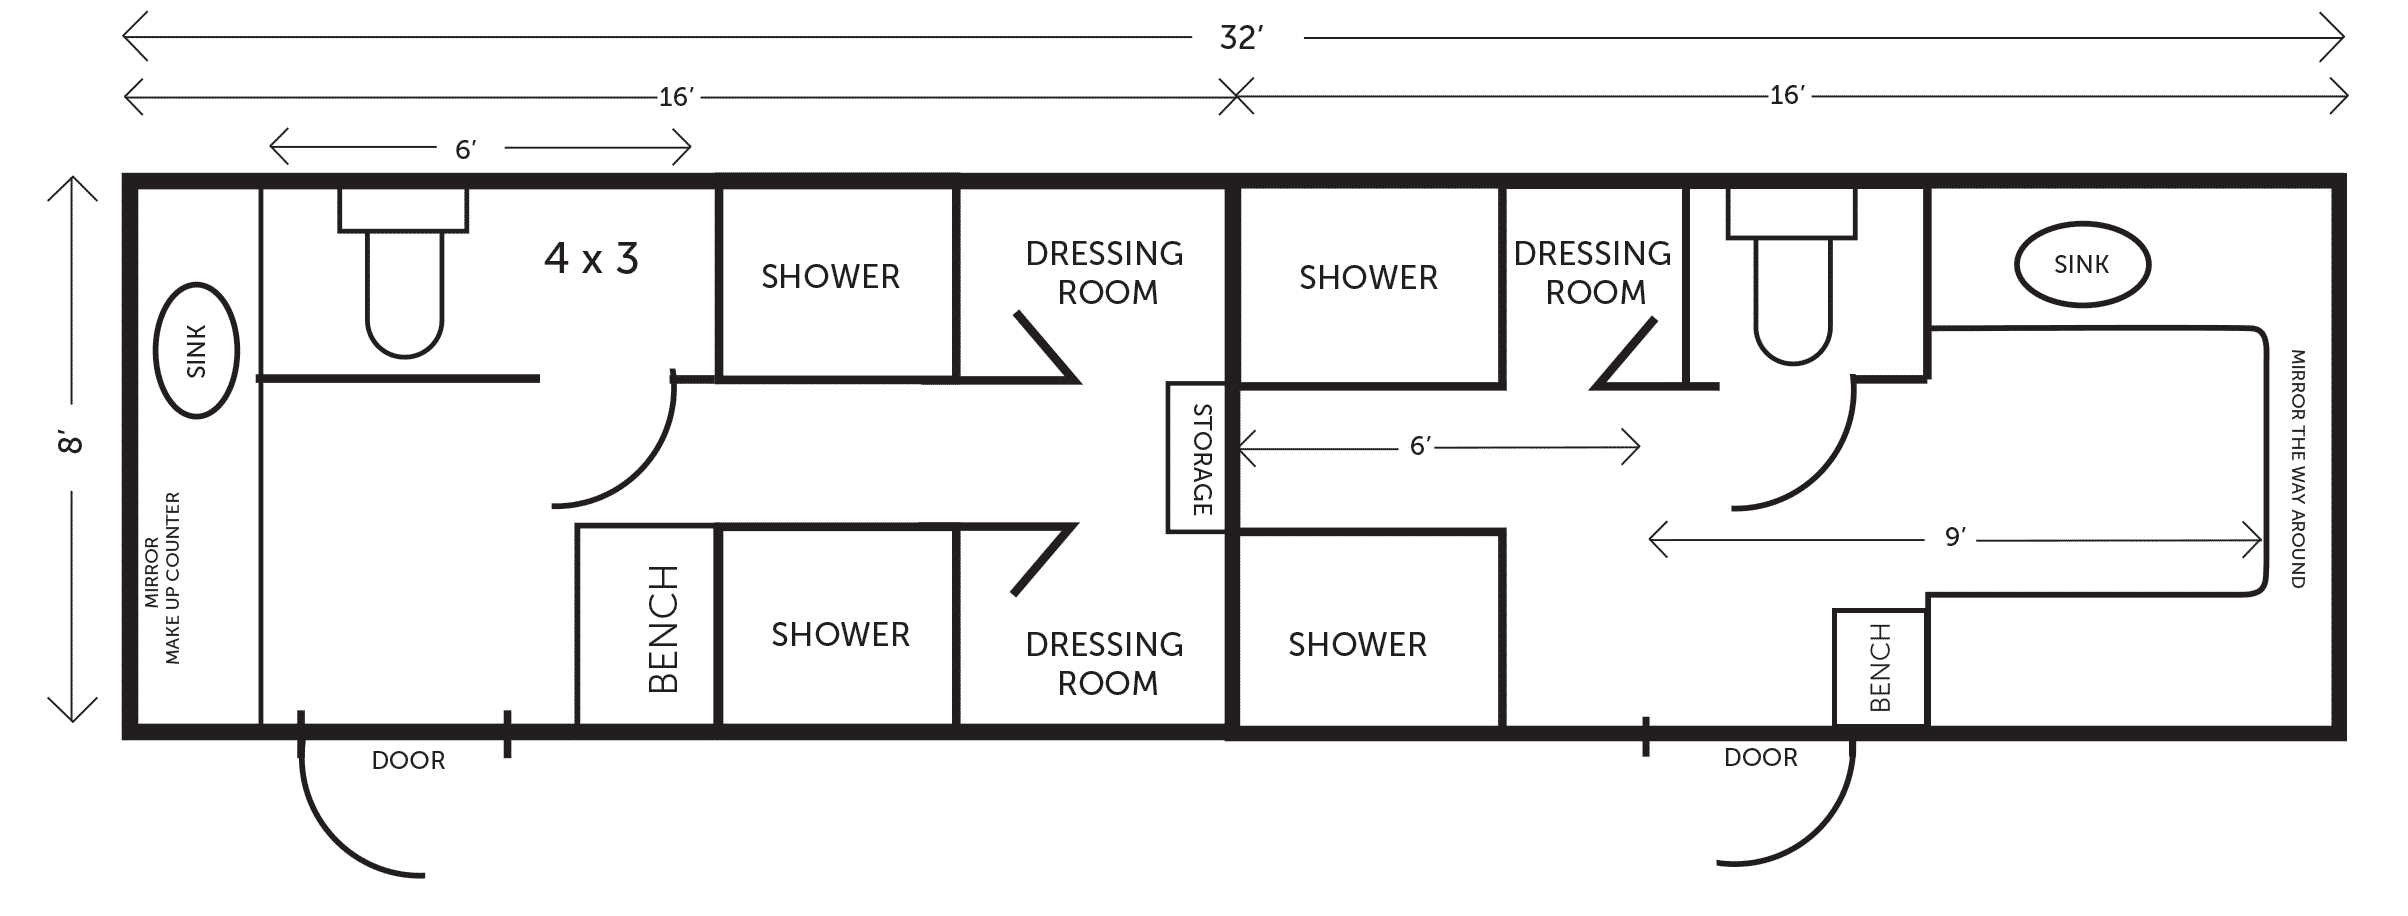 tandd-4-shower-rental-floorplan